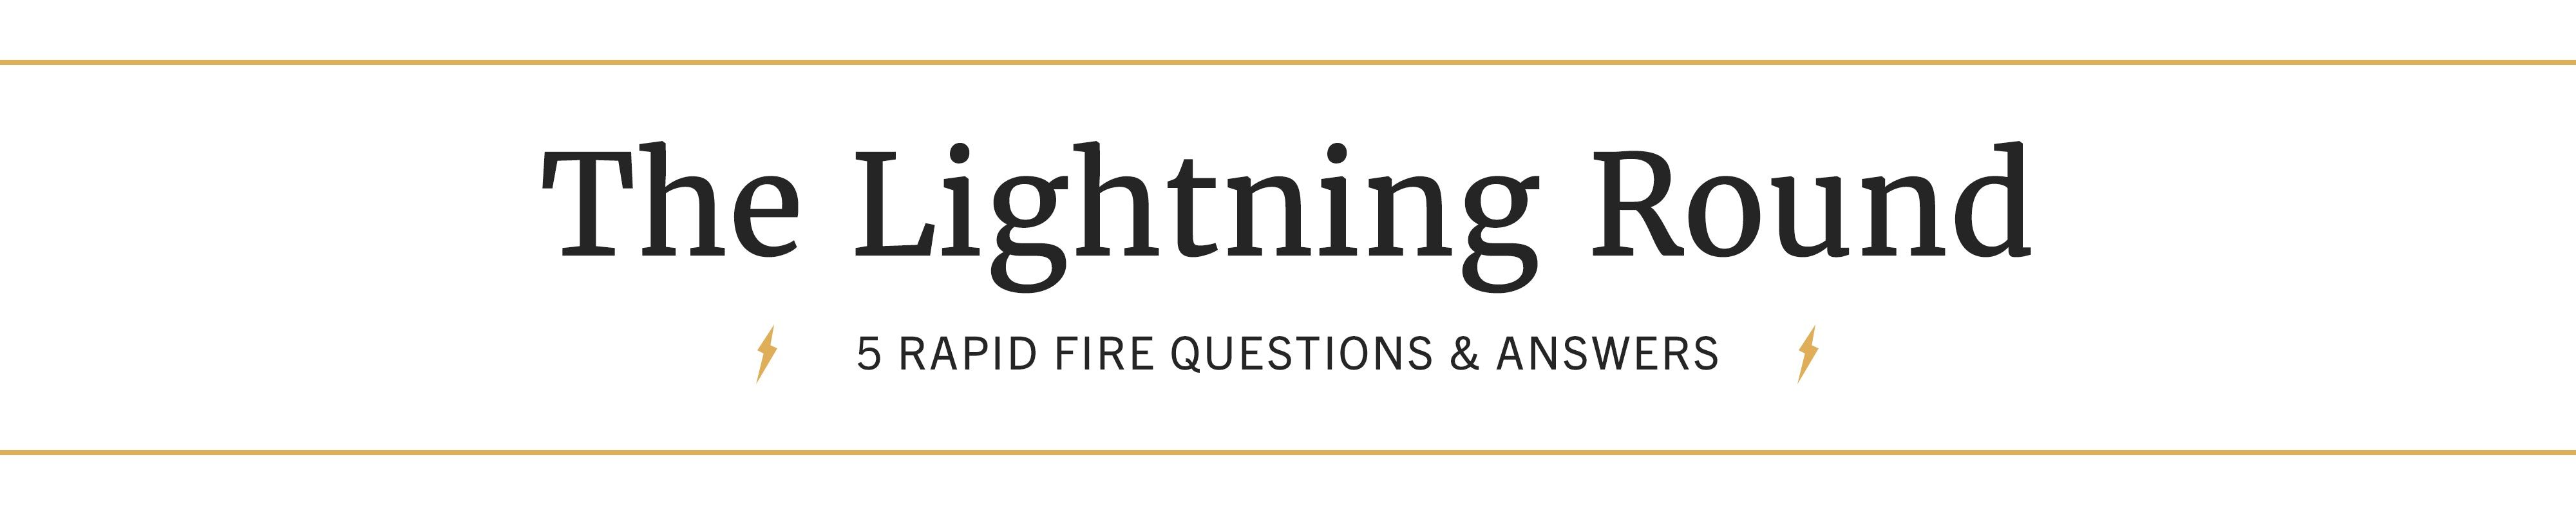 The Lightning Round: 5 Rapid Fire Questions and Answers